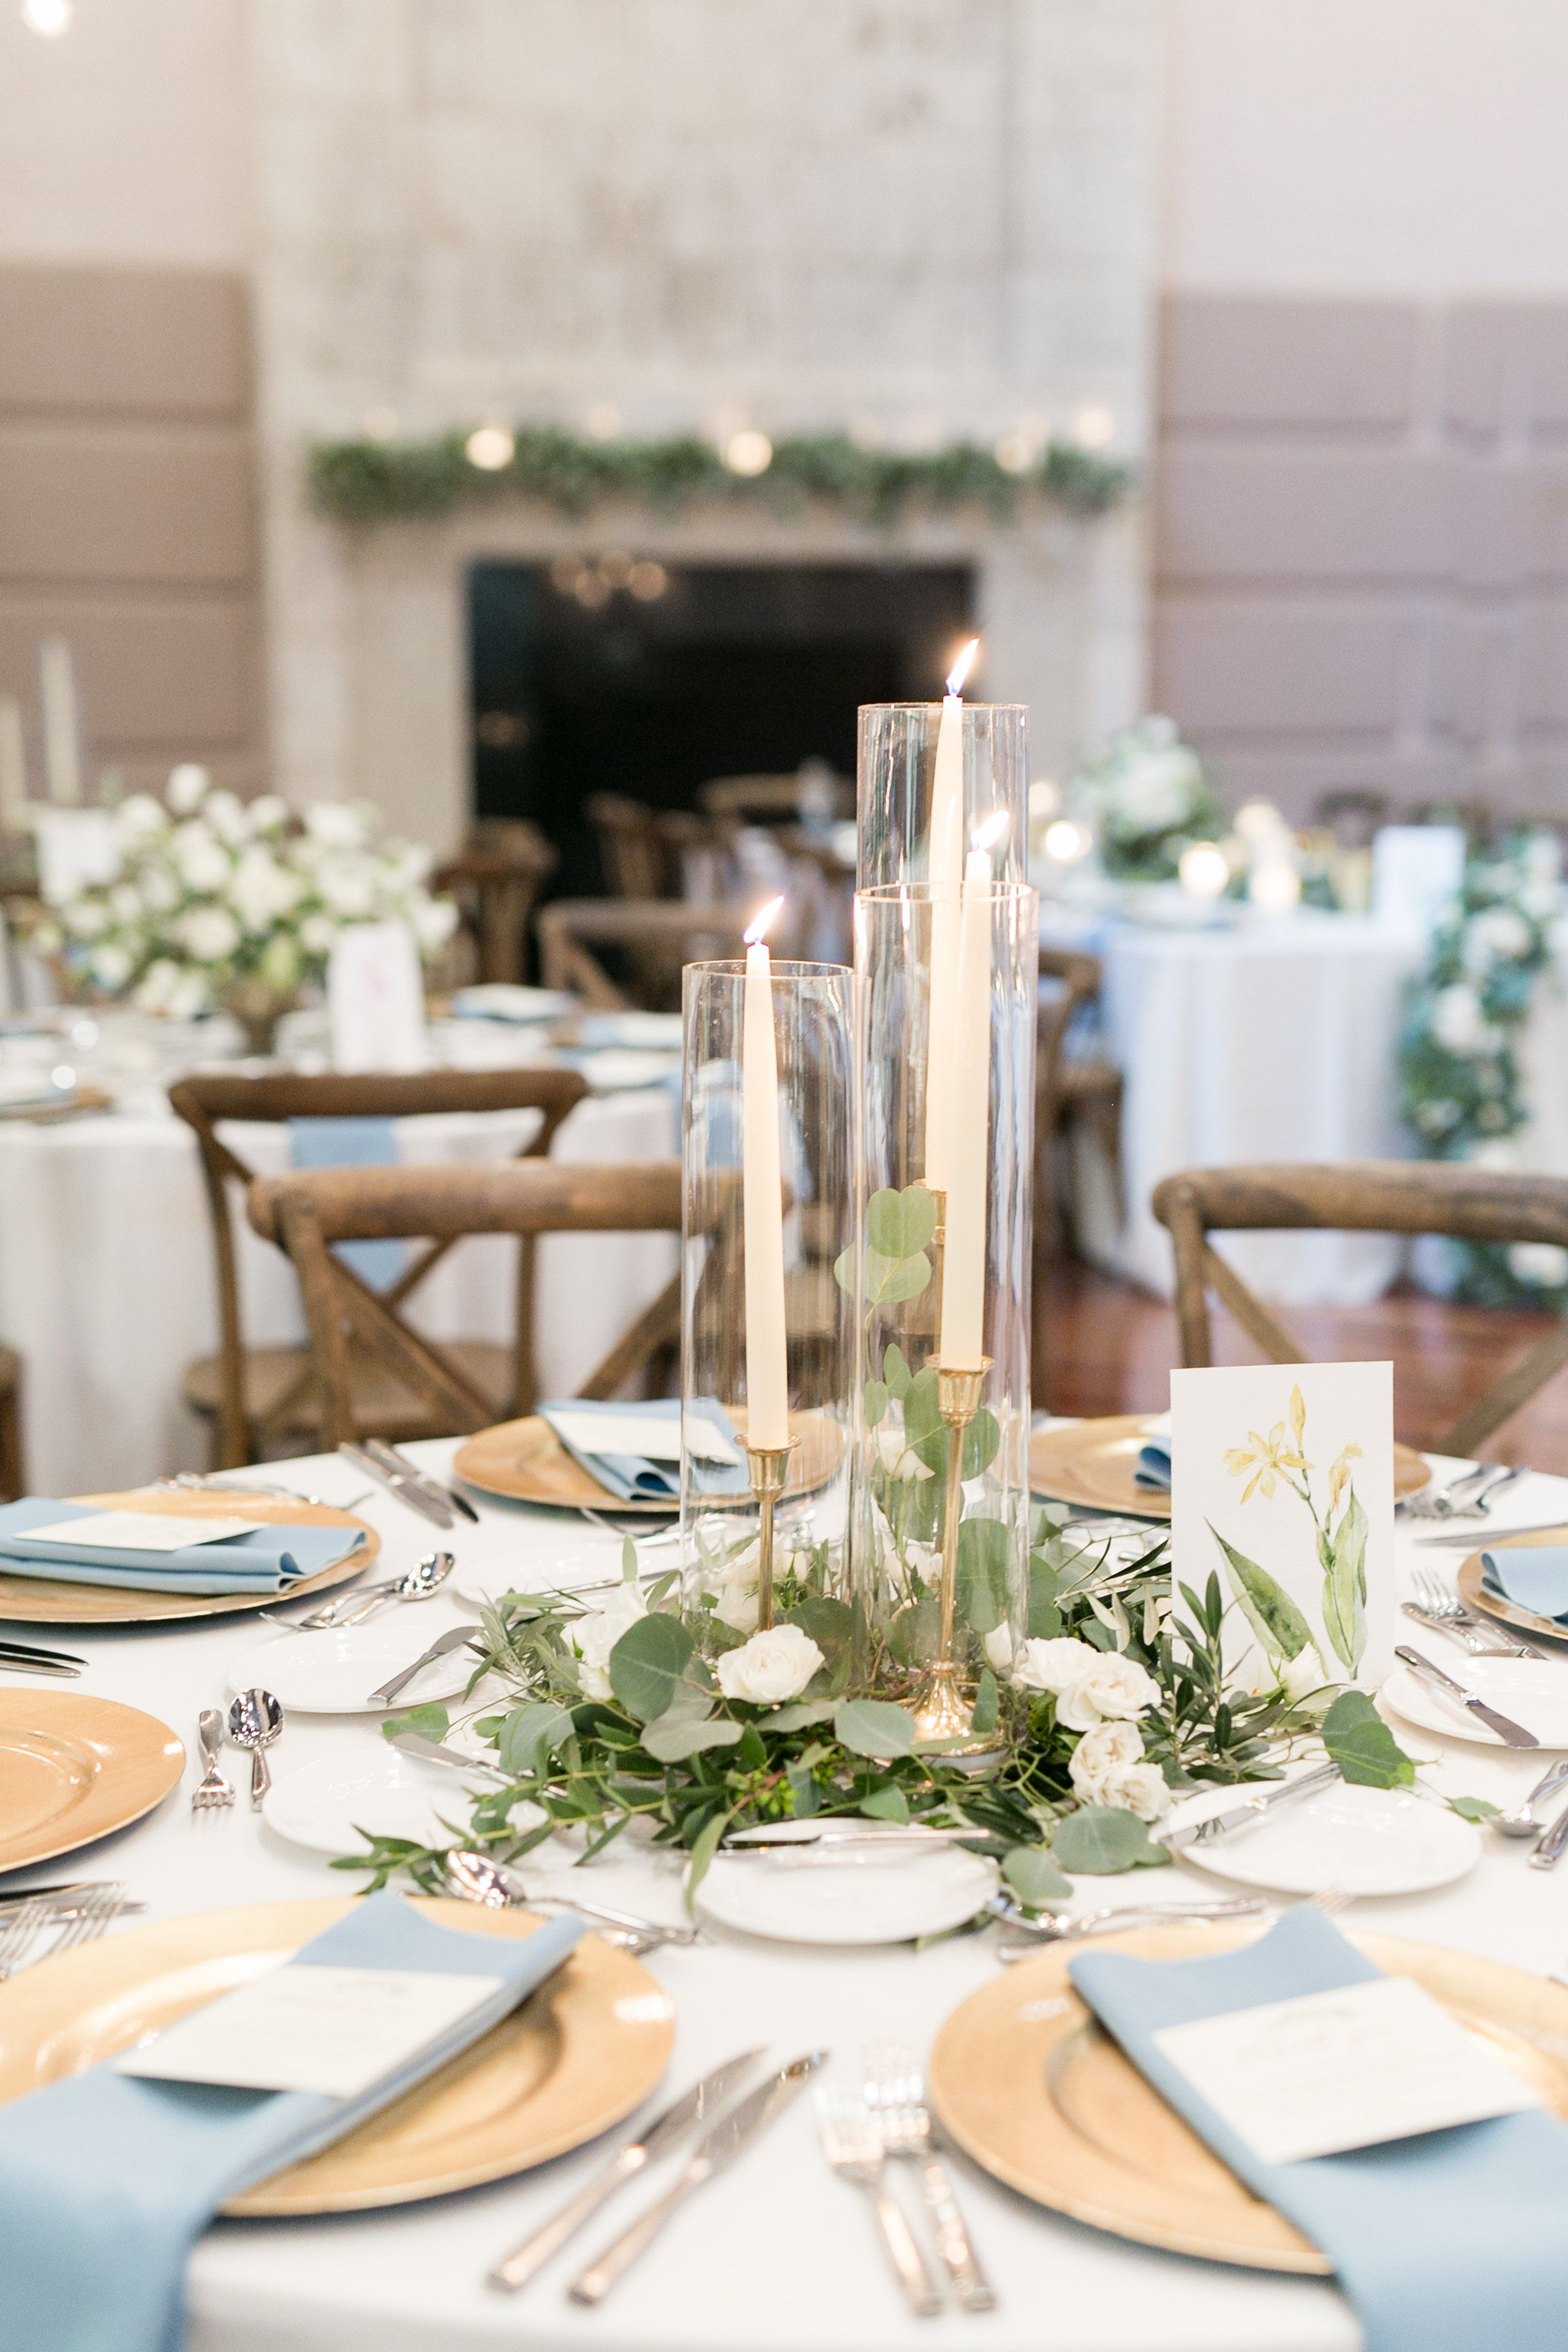 Elegant Simplicity In This Reception Centerpiece Of Eucalyptus And